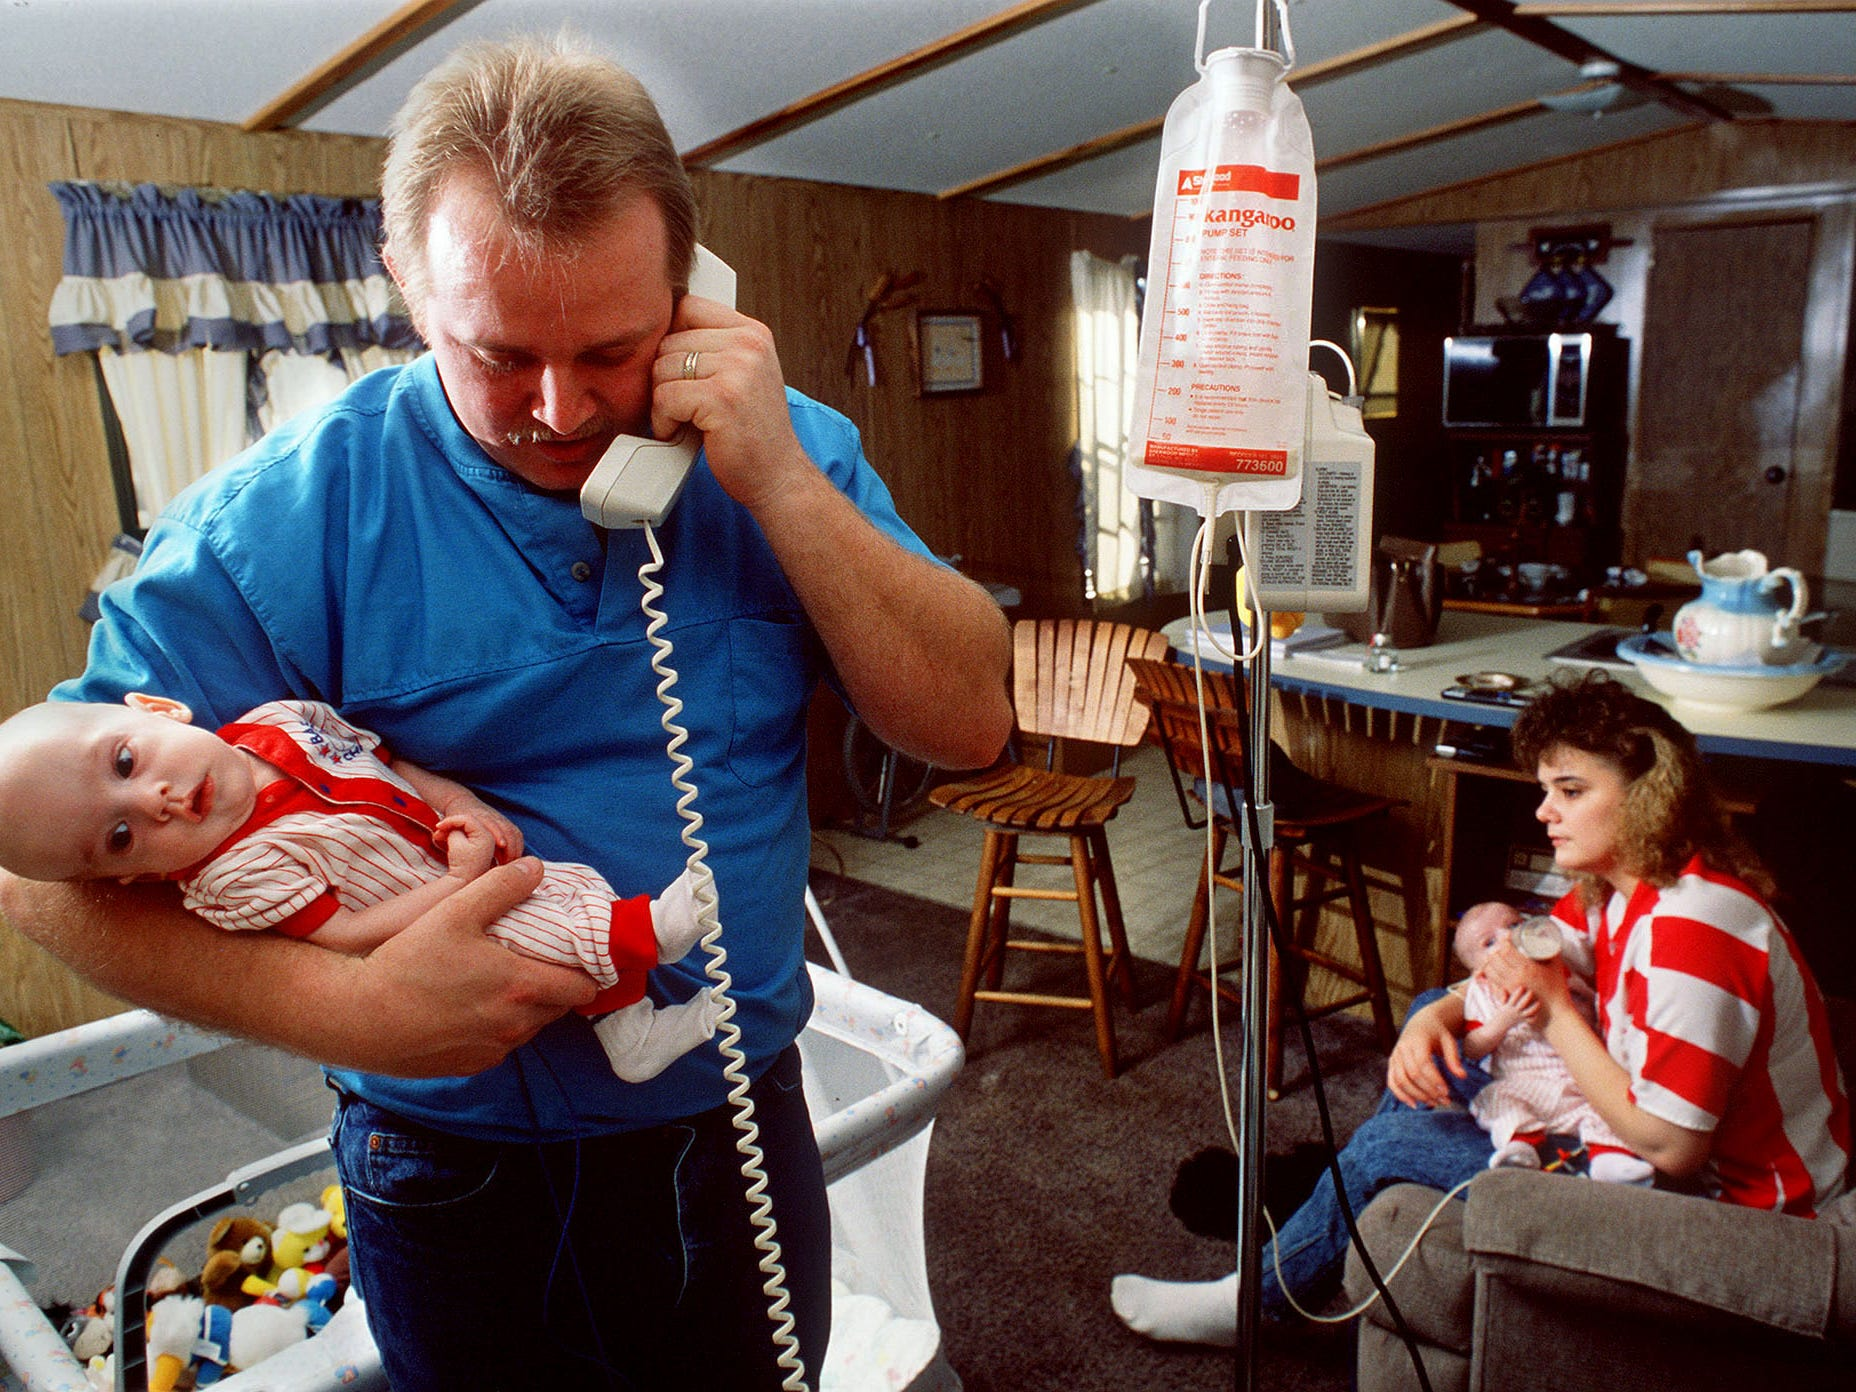 James Epps, holding his son, Bryan, answers the phone as Tracie Epps feeds the twin brother, Joshua. Their twins are still recovering after surgery to separate the conjoined twins. Feb. 5, 1990